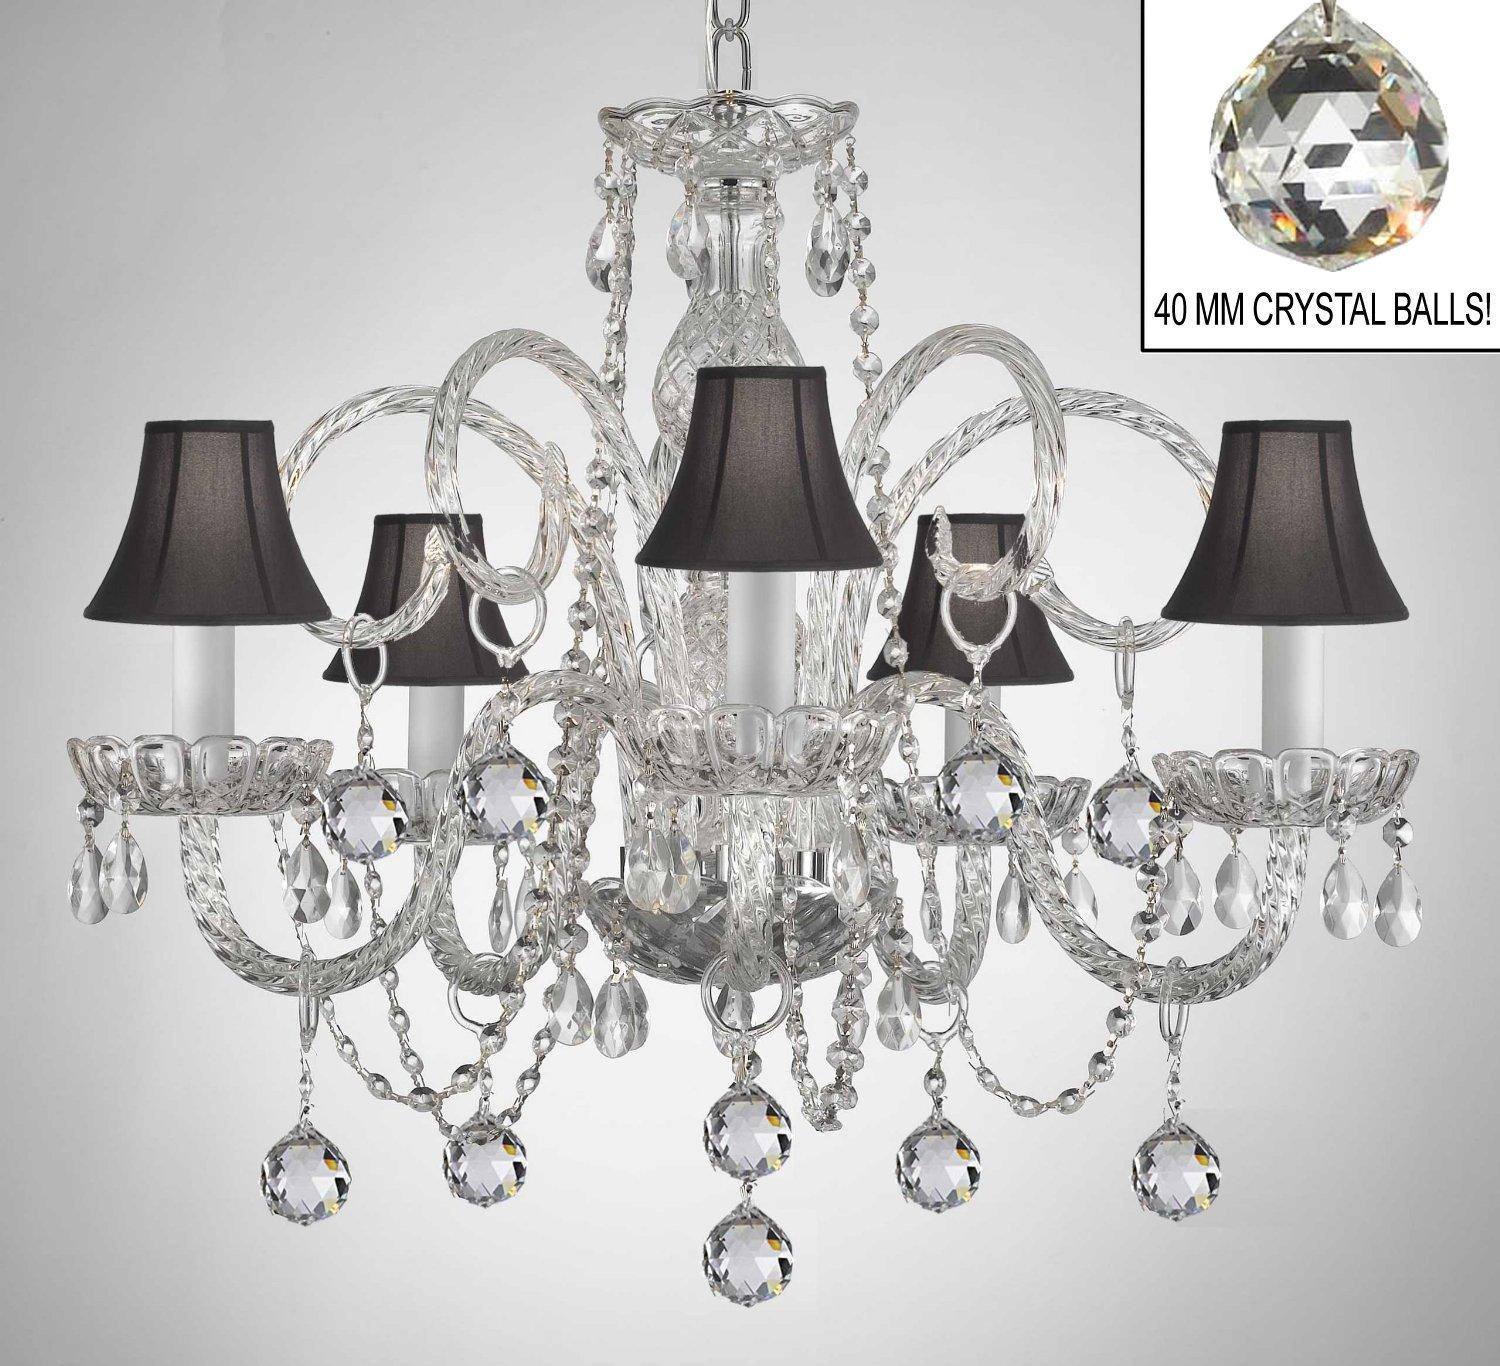 Crystal Chandelier With Black Shades & Crystal Balls